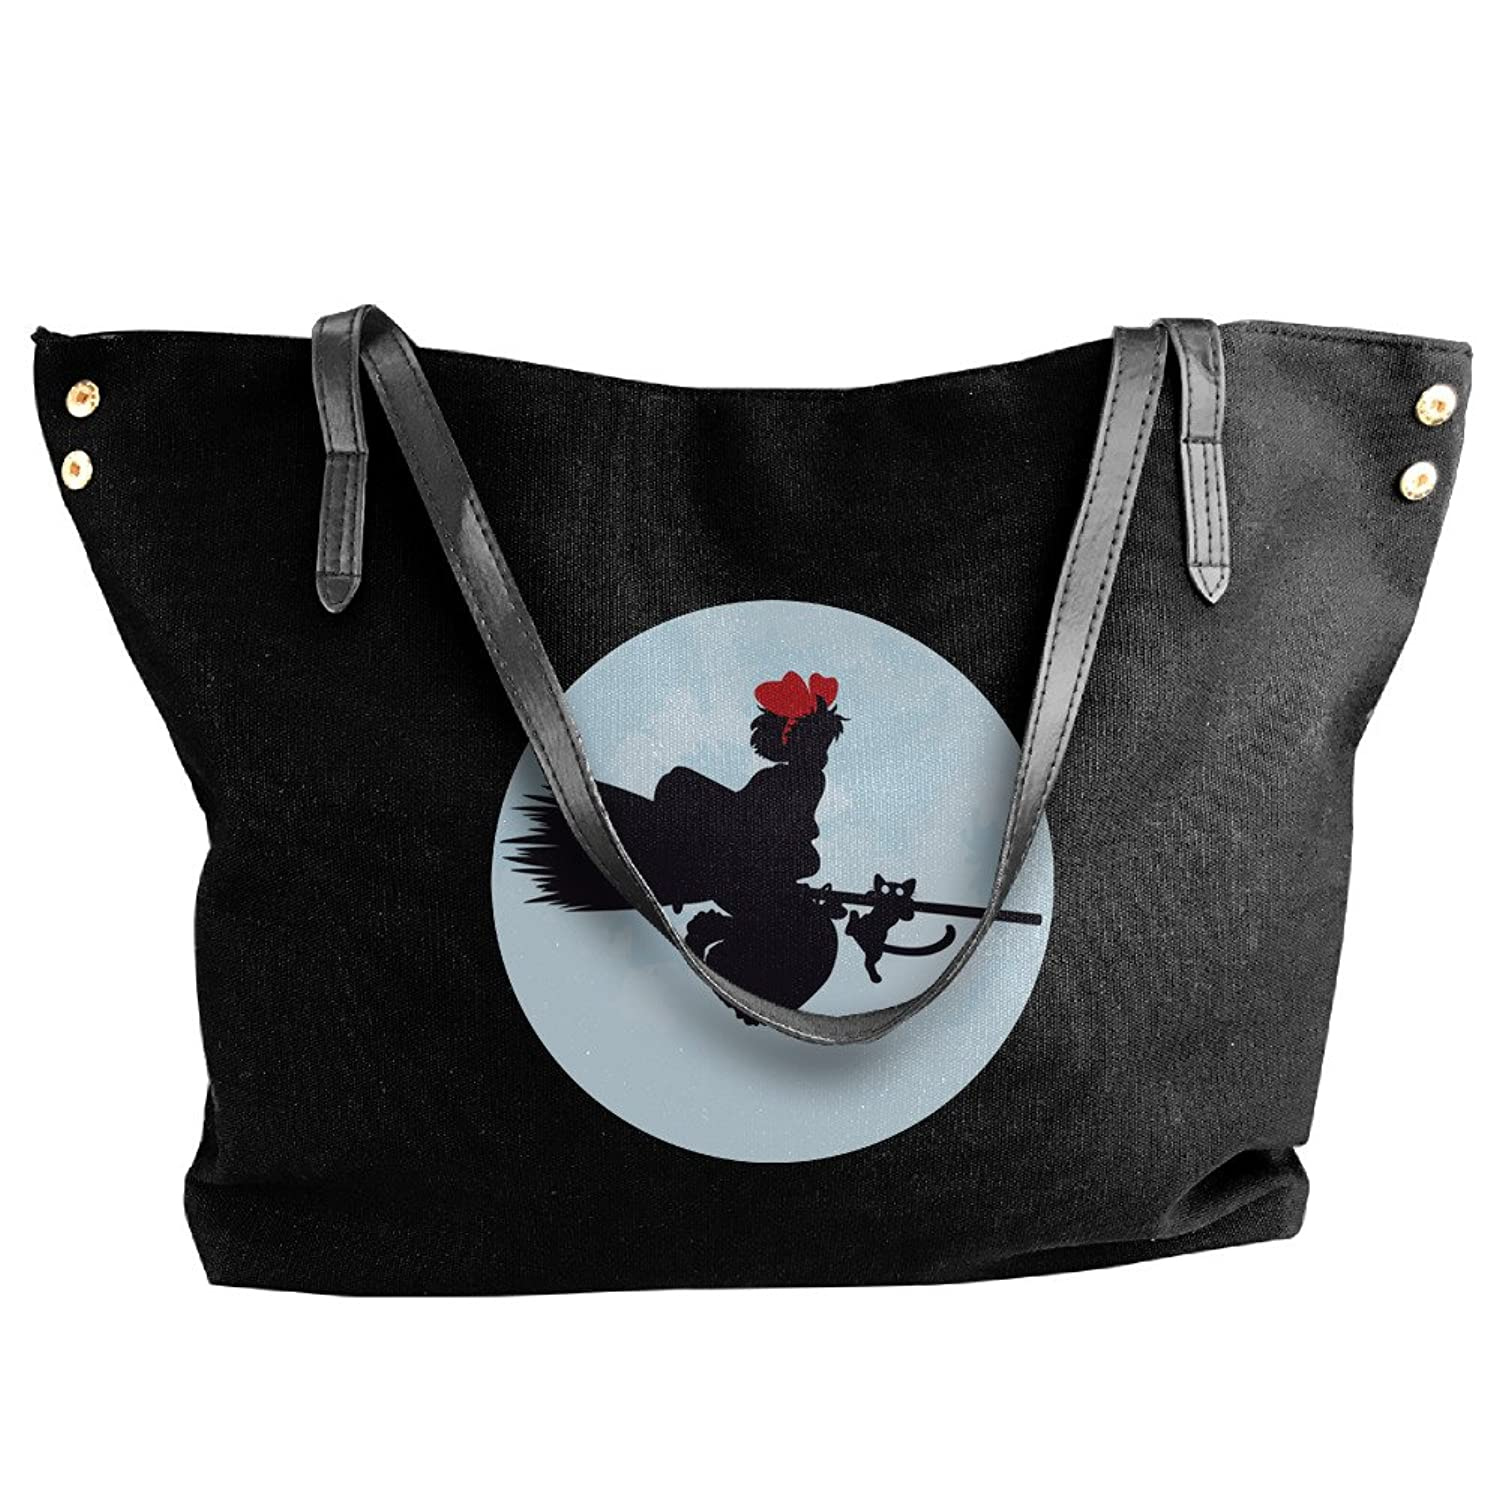 Kiki's Delivery Service Bags For Women Black